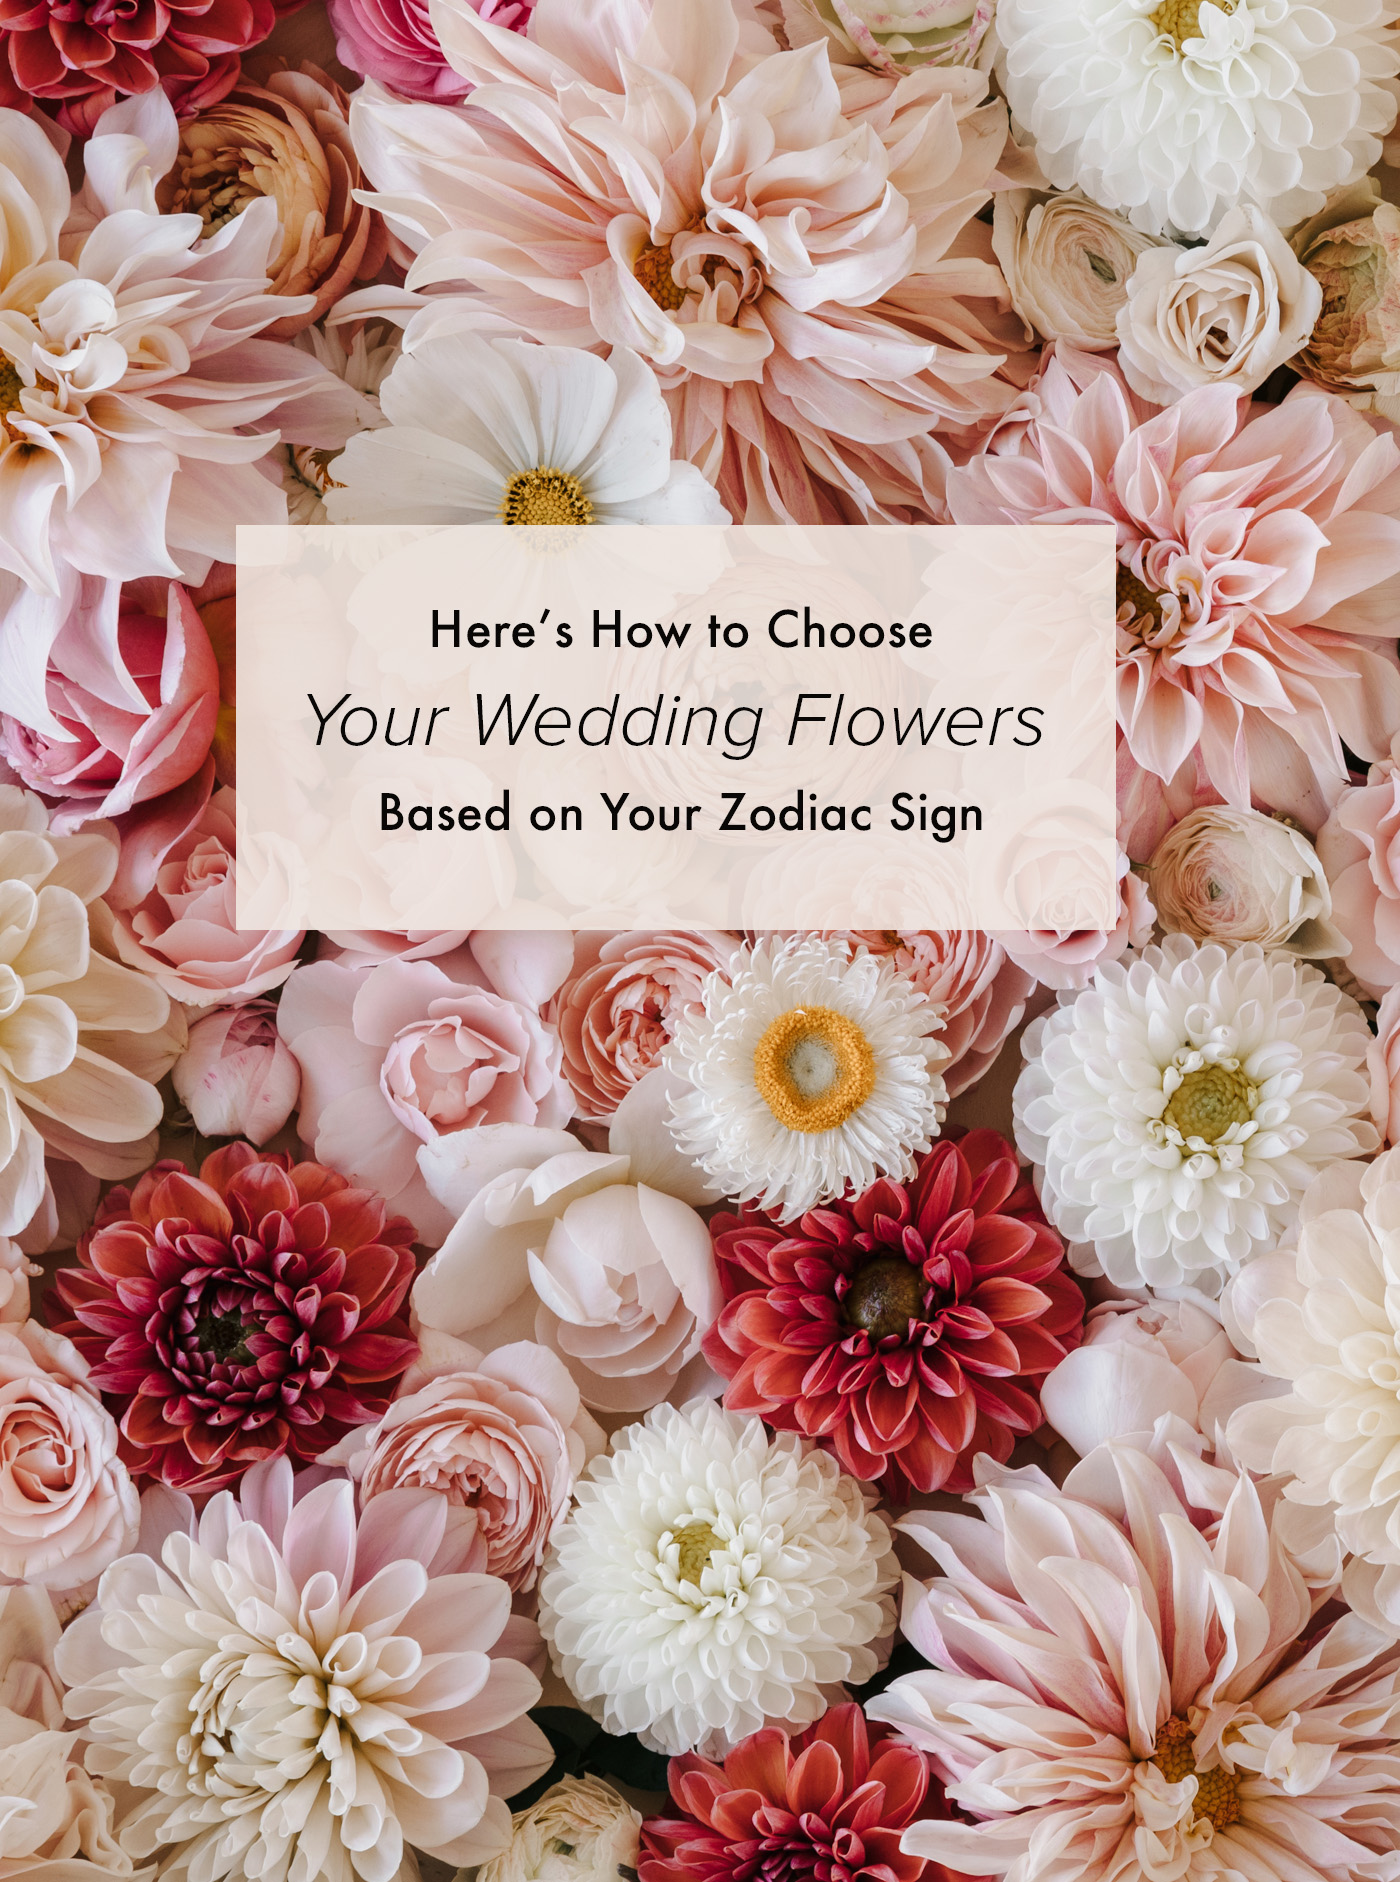 How to Choose Your Wedding Flowers Based on Your Zodiac Sign